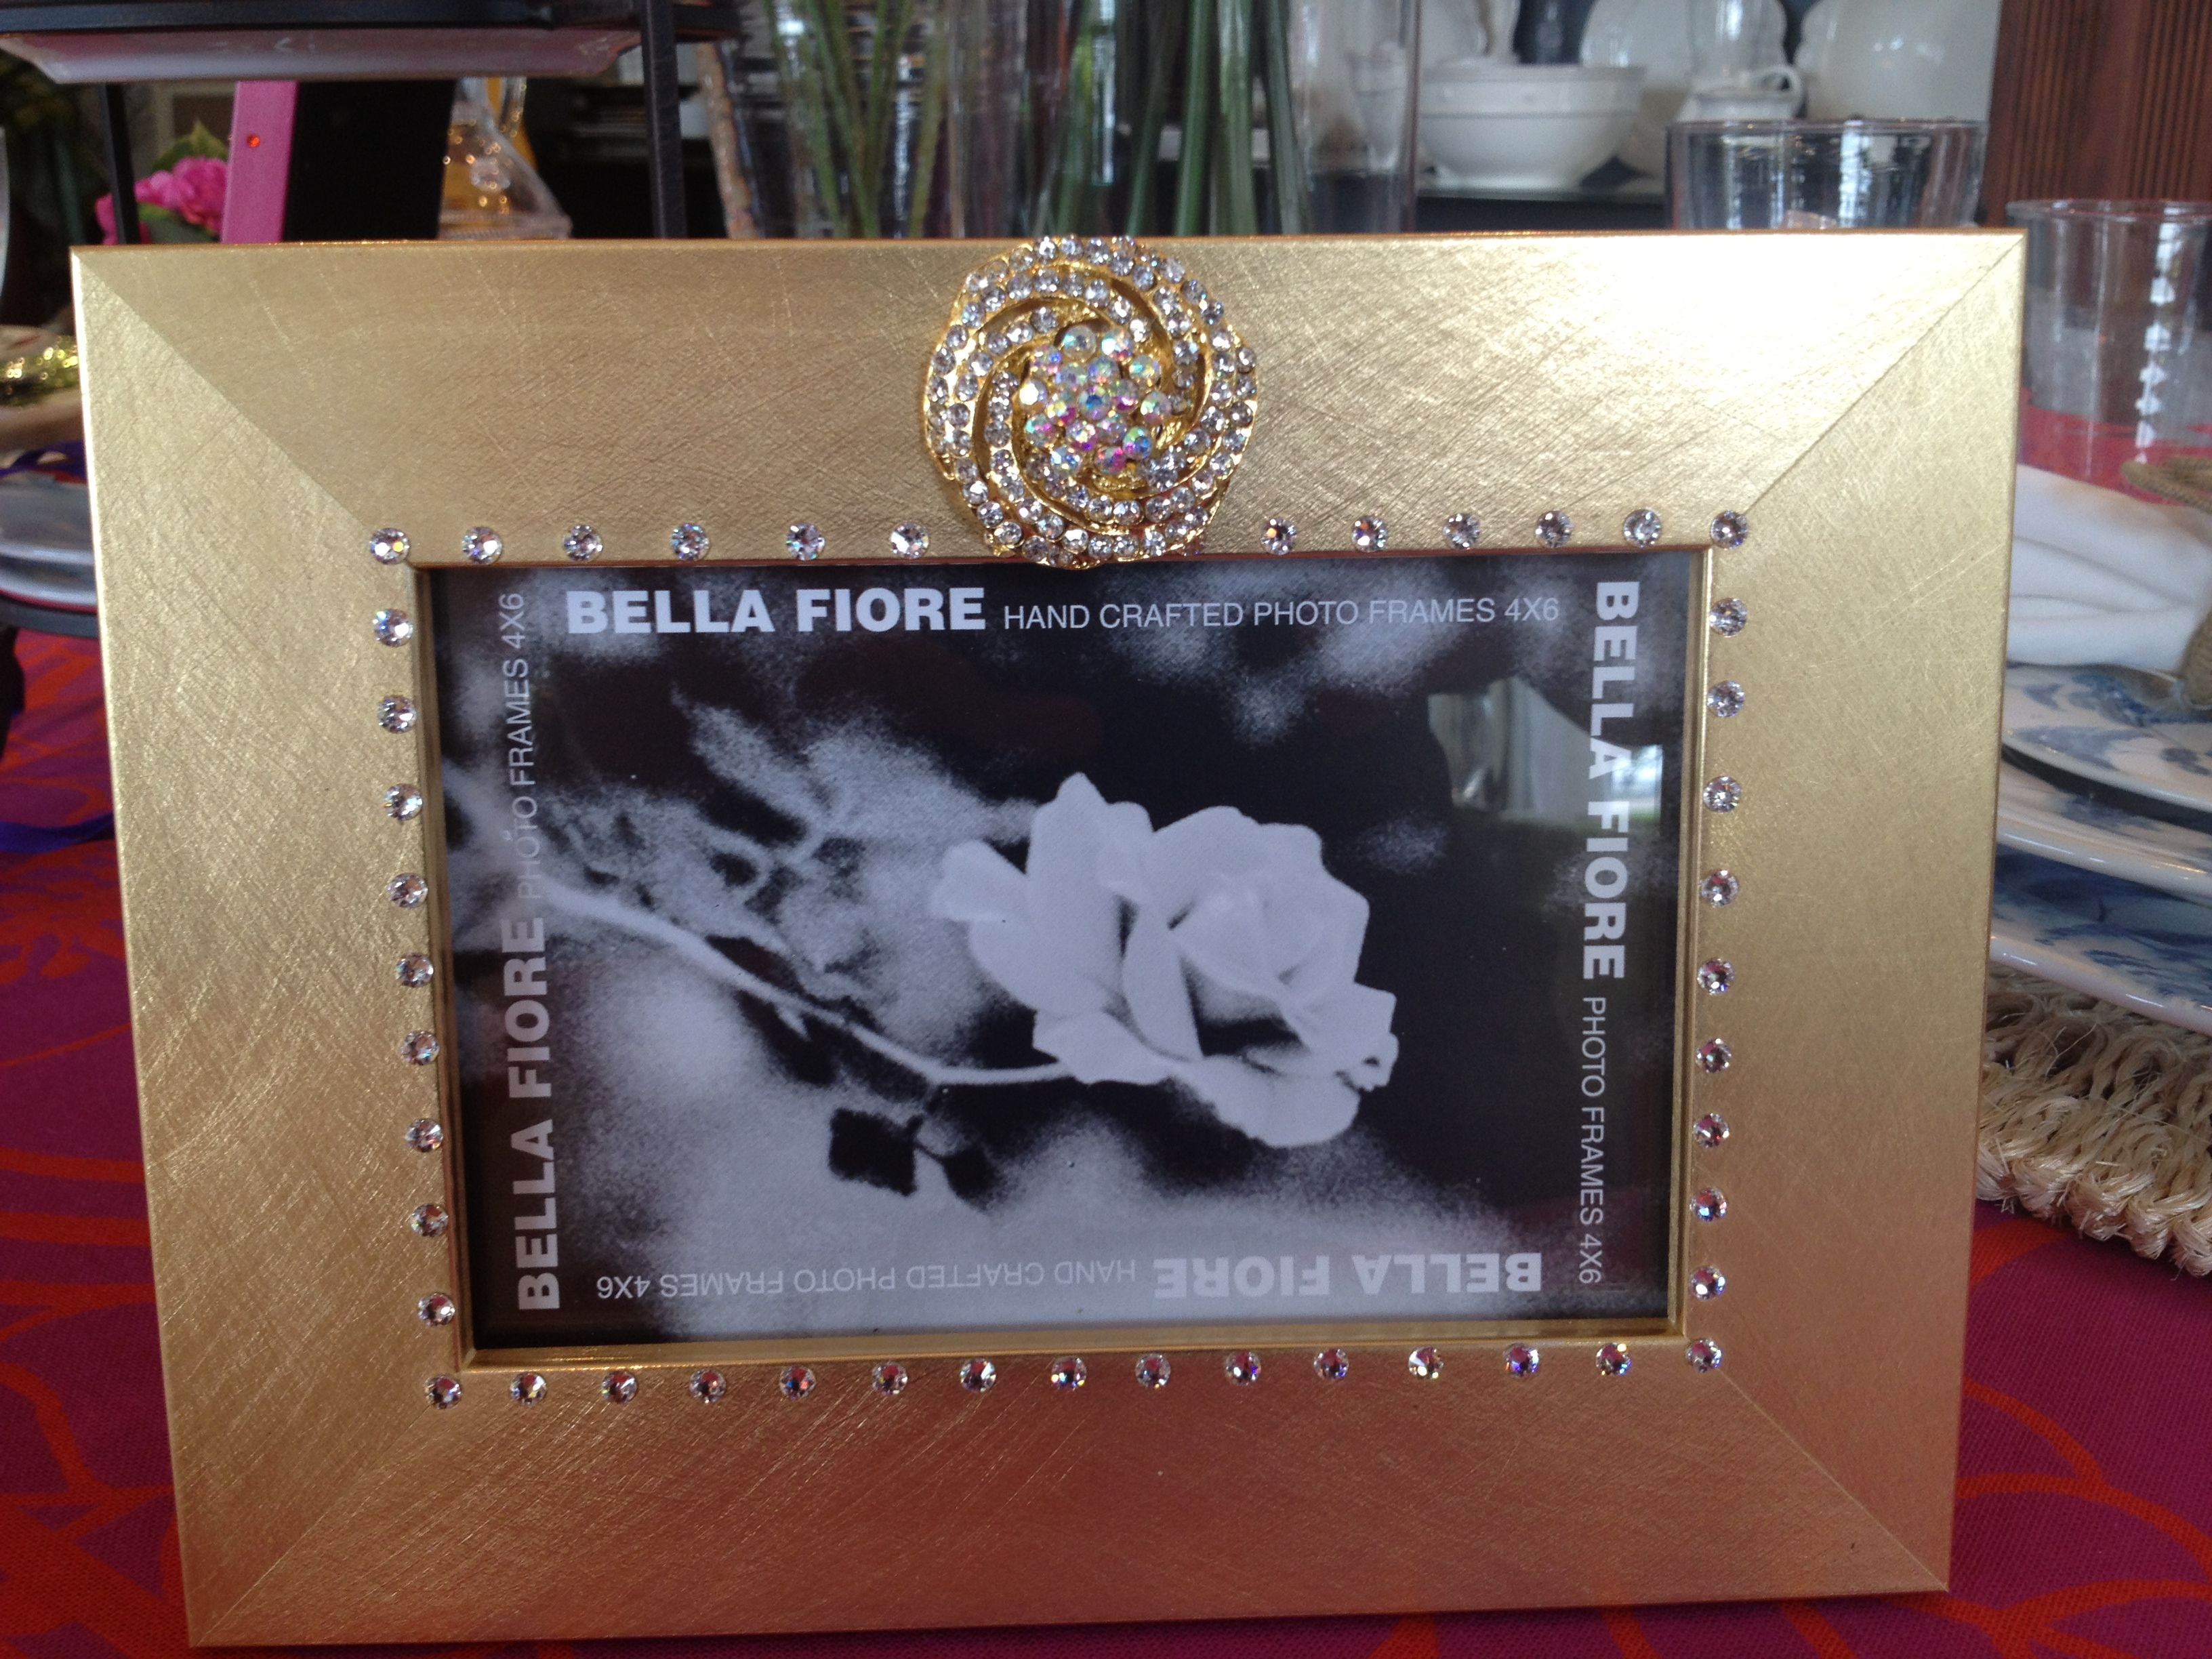 An elegant bella fiore frame for those special memories an elegant bella fiore frame for those special memories available at marytuttles jeuxipadfo Gallery